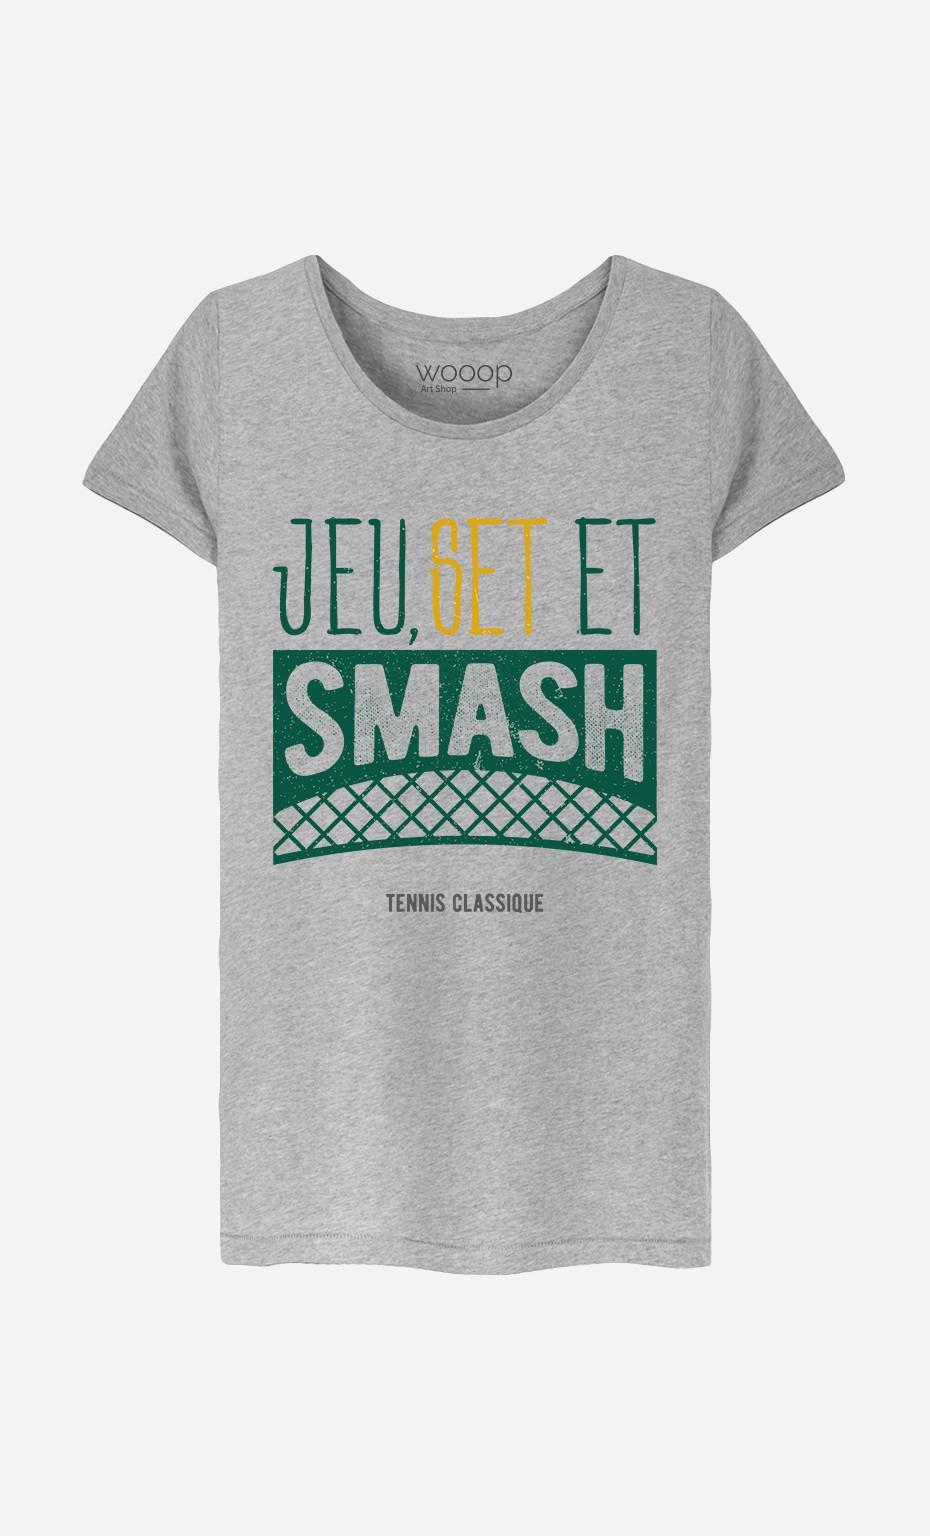 T-Shirt Jeu Set et Smash